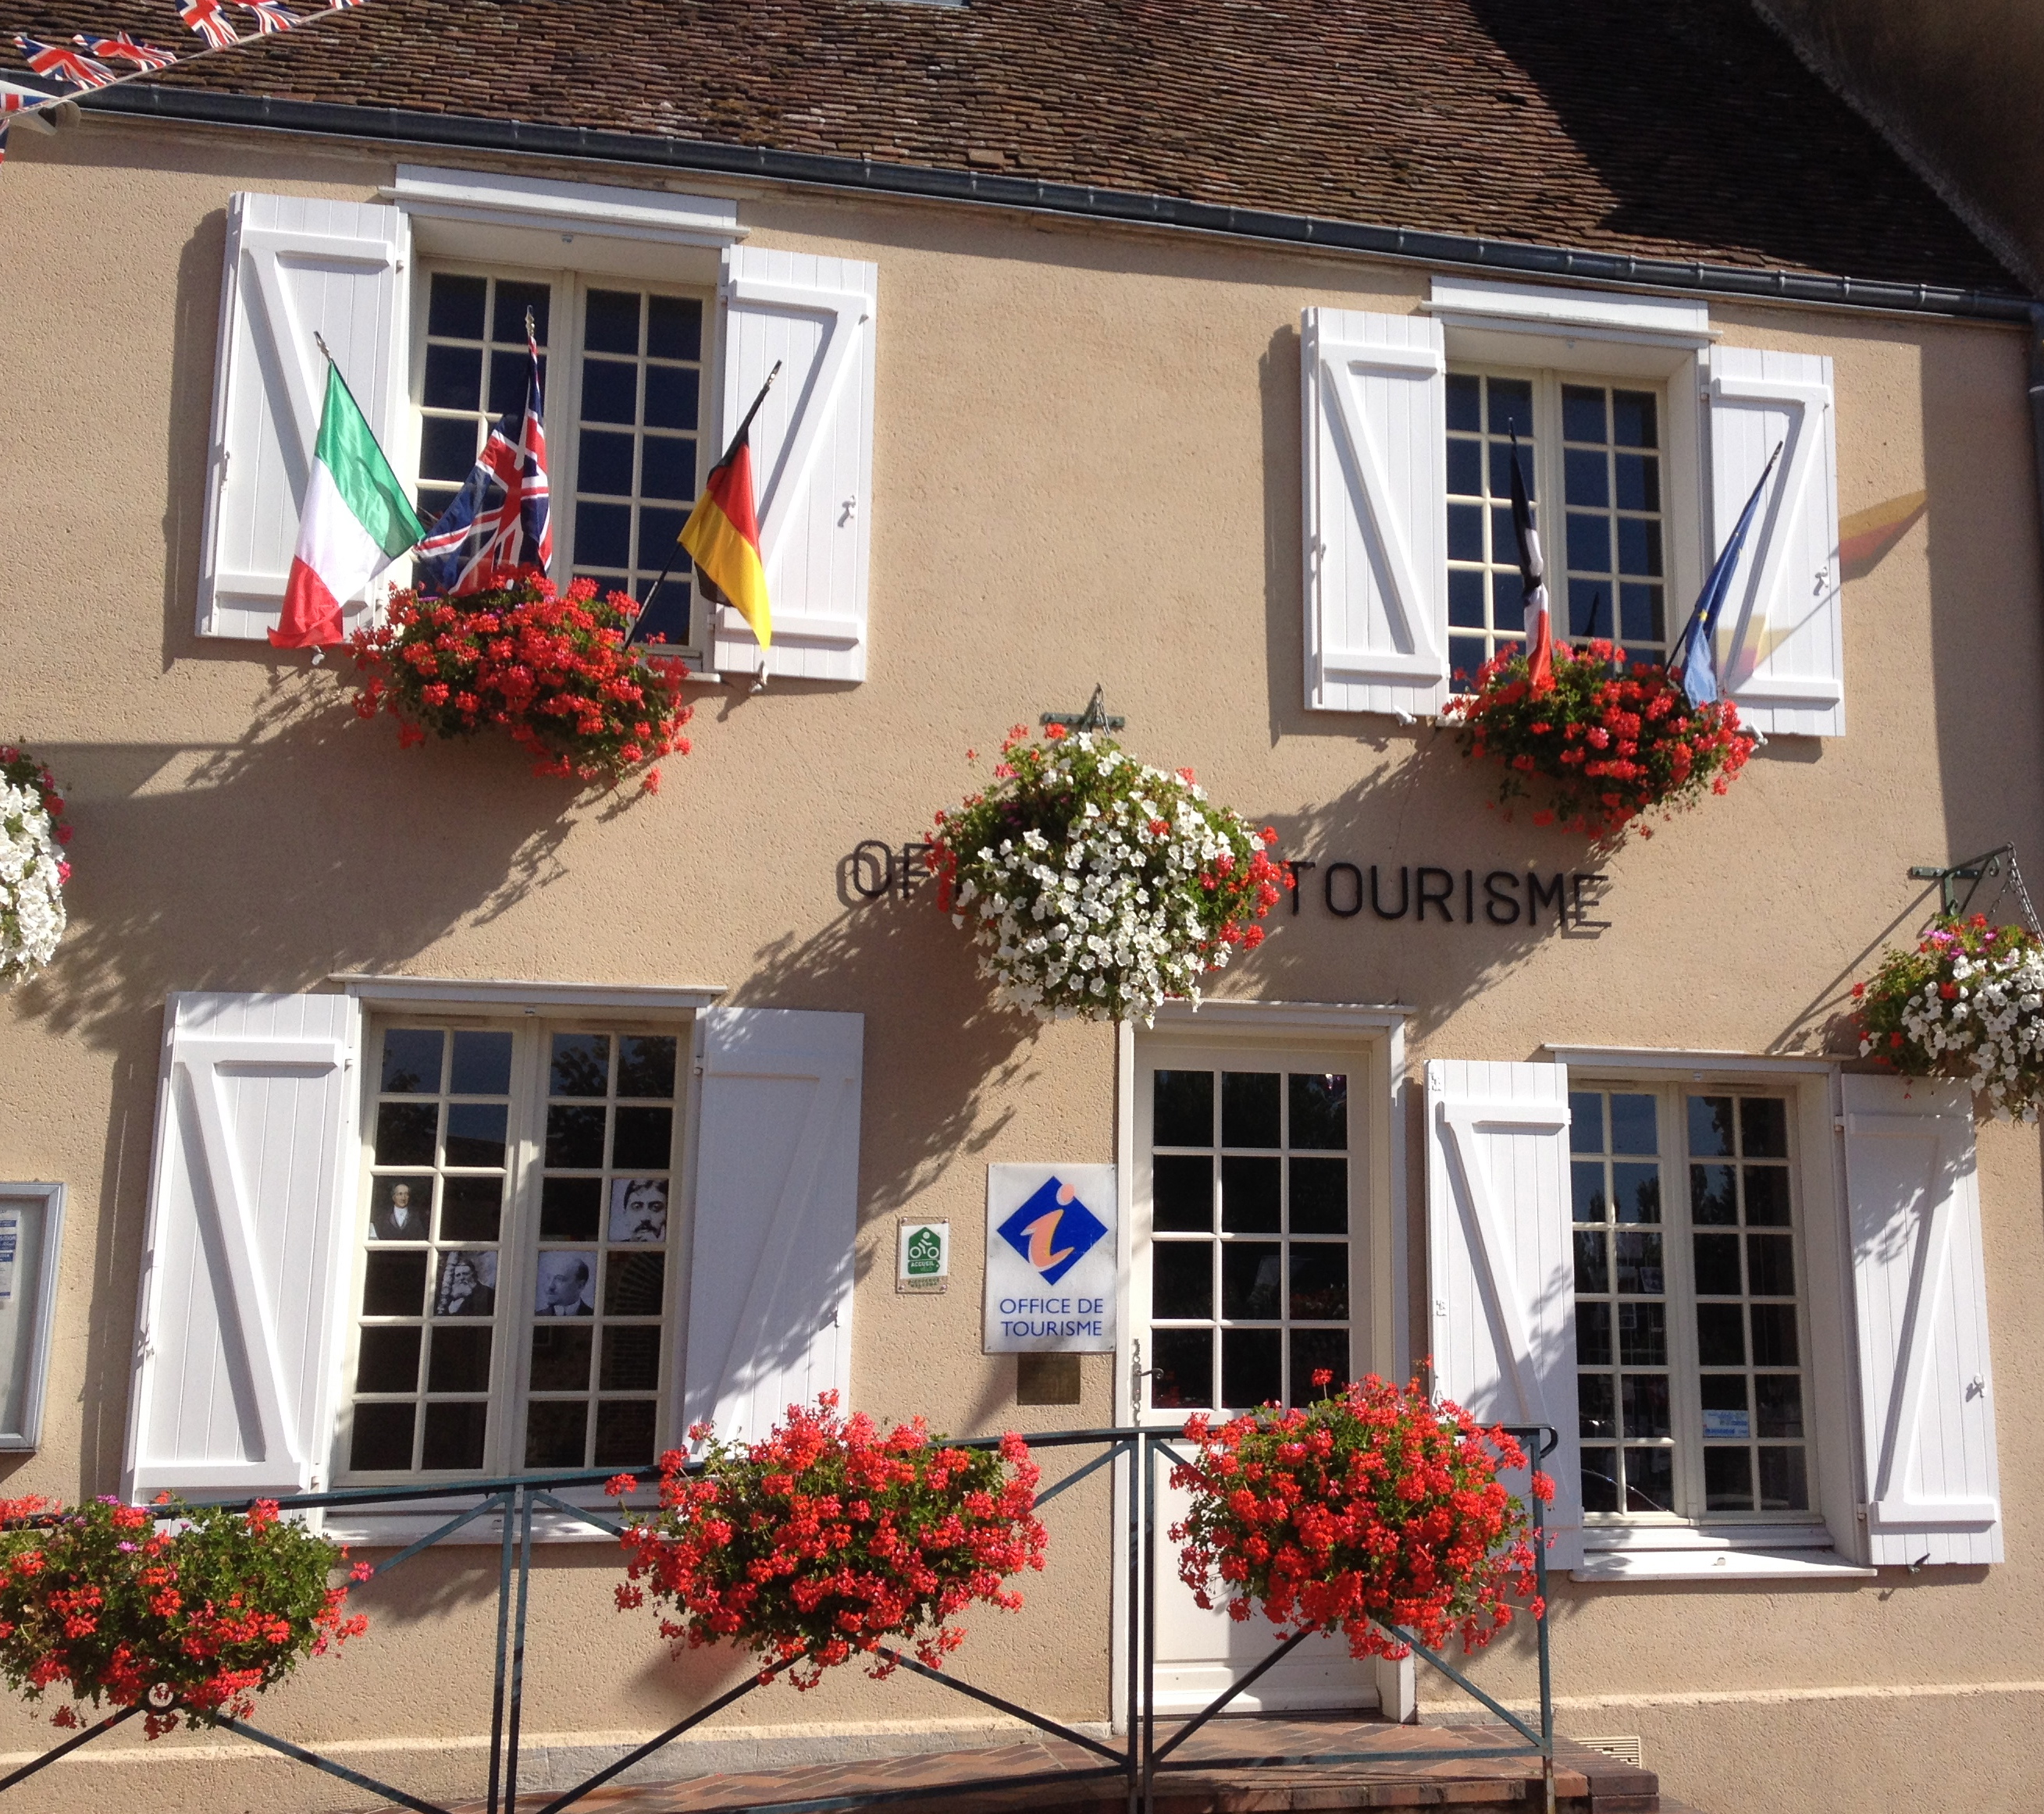 OFFICE DE TOURISME INTERCOMMUNAL ENTRE BEAUCE ET PERCHE